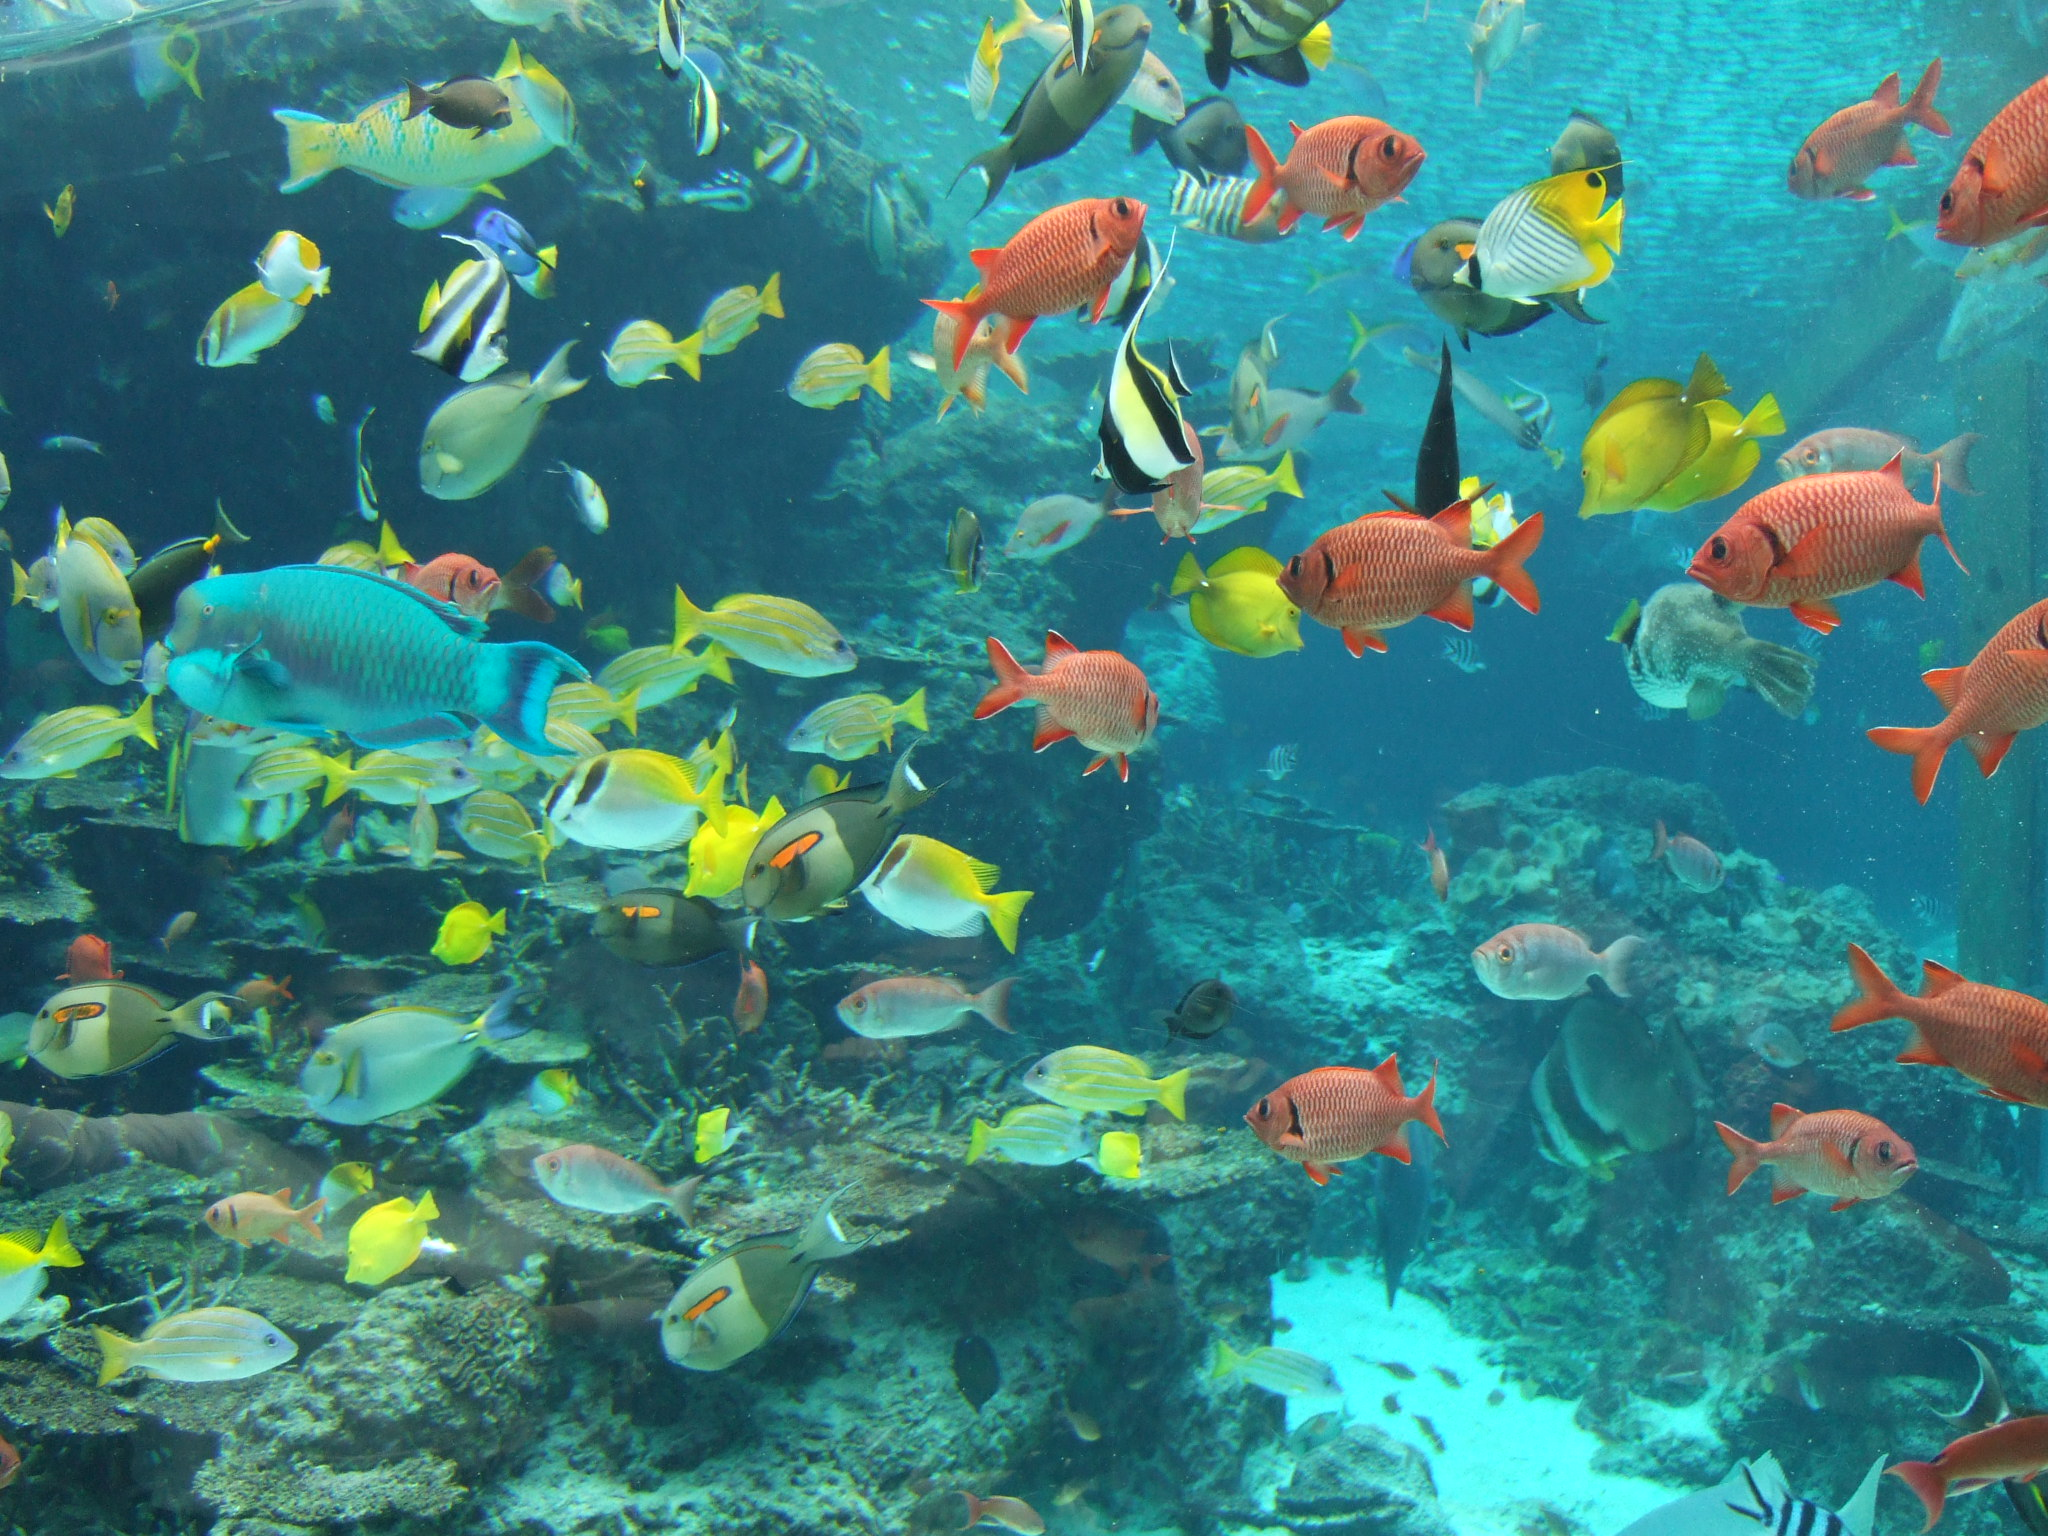 Description Fish in Okinawa Churaumi Aquarium.JPG